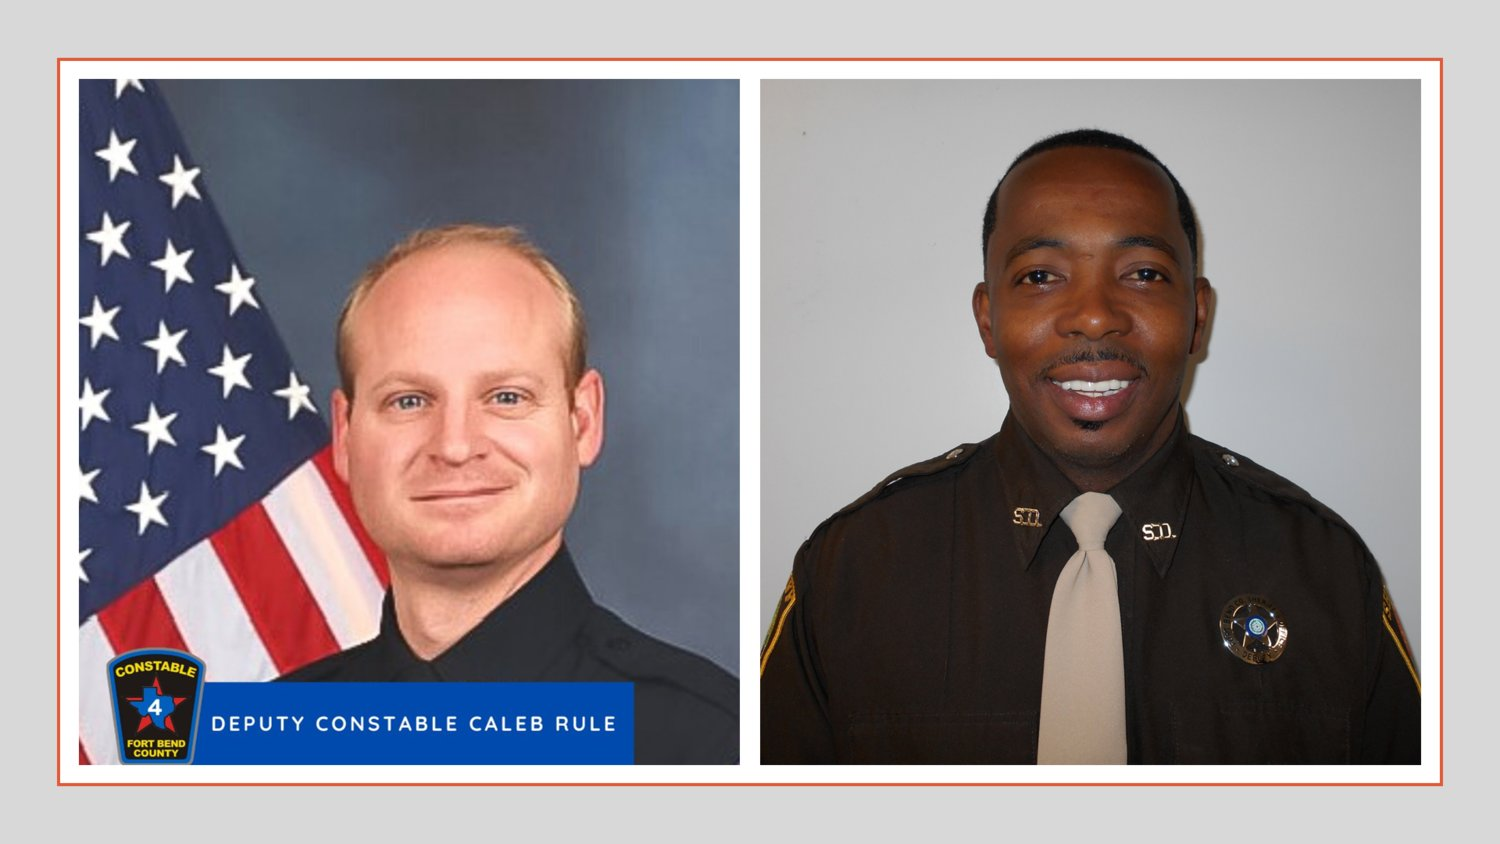 Chackwick McRae (right) has been indicted on the charge of Criminally Negligent Homicide in connection with the May 29 shooting death of Fort Bend County Constable's Deputy for Precinct 4 Caleb Rule (left).